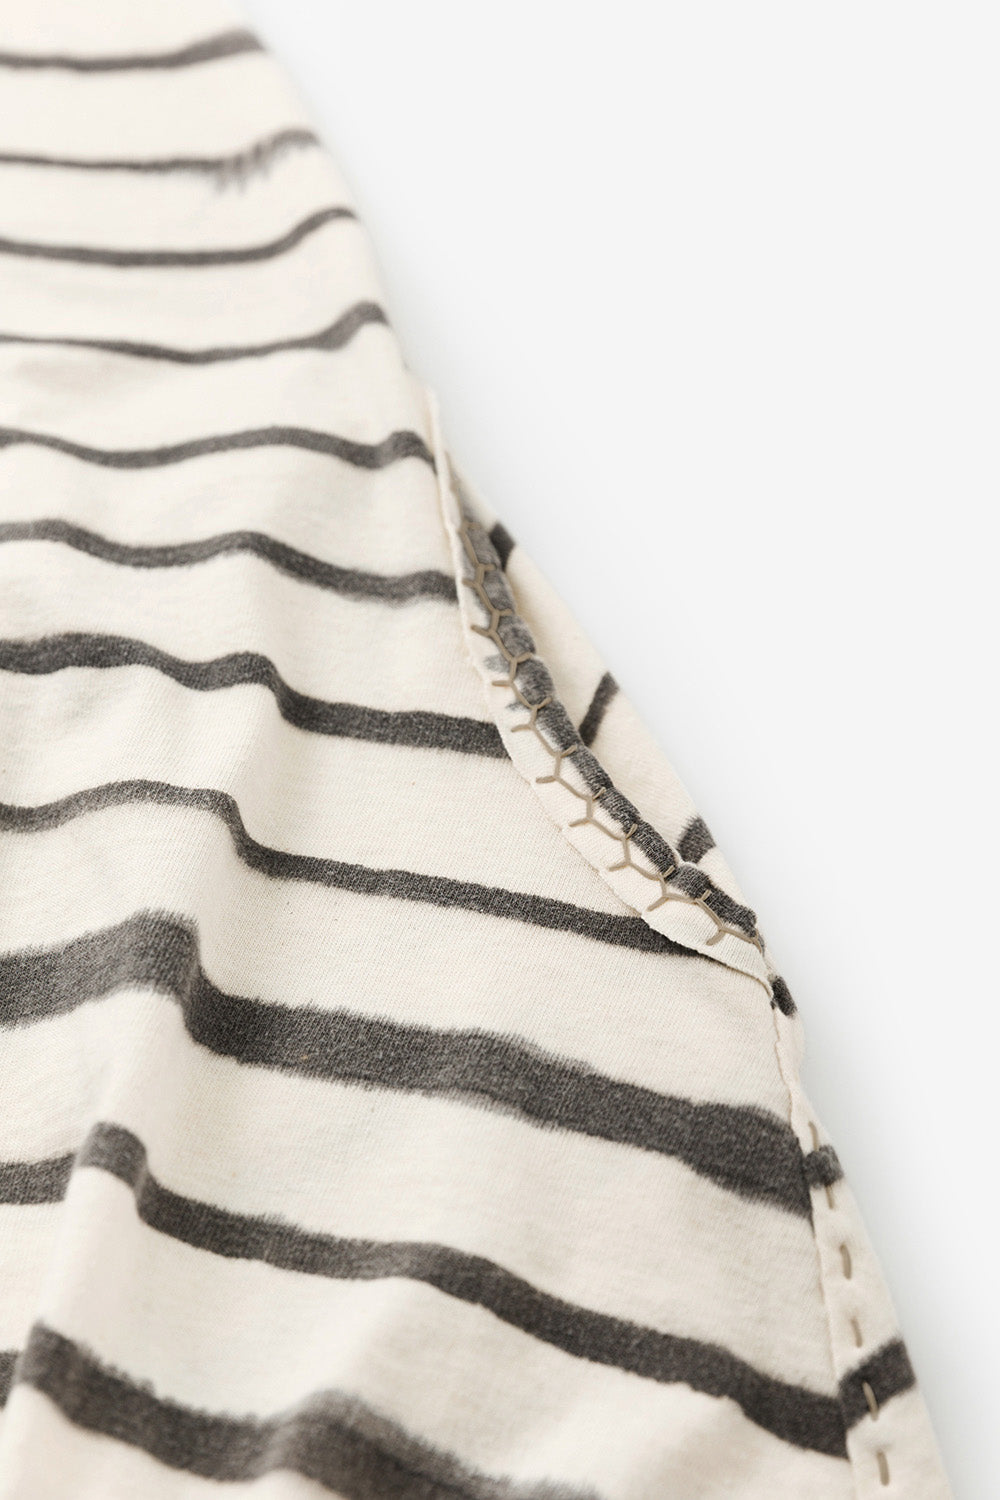 The School of Making Faded Stripe Keyhole Tunic Kit Hand-Sewn made with Organic Cotton